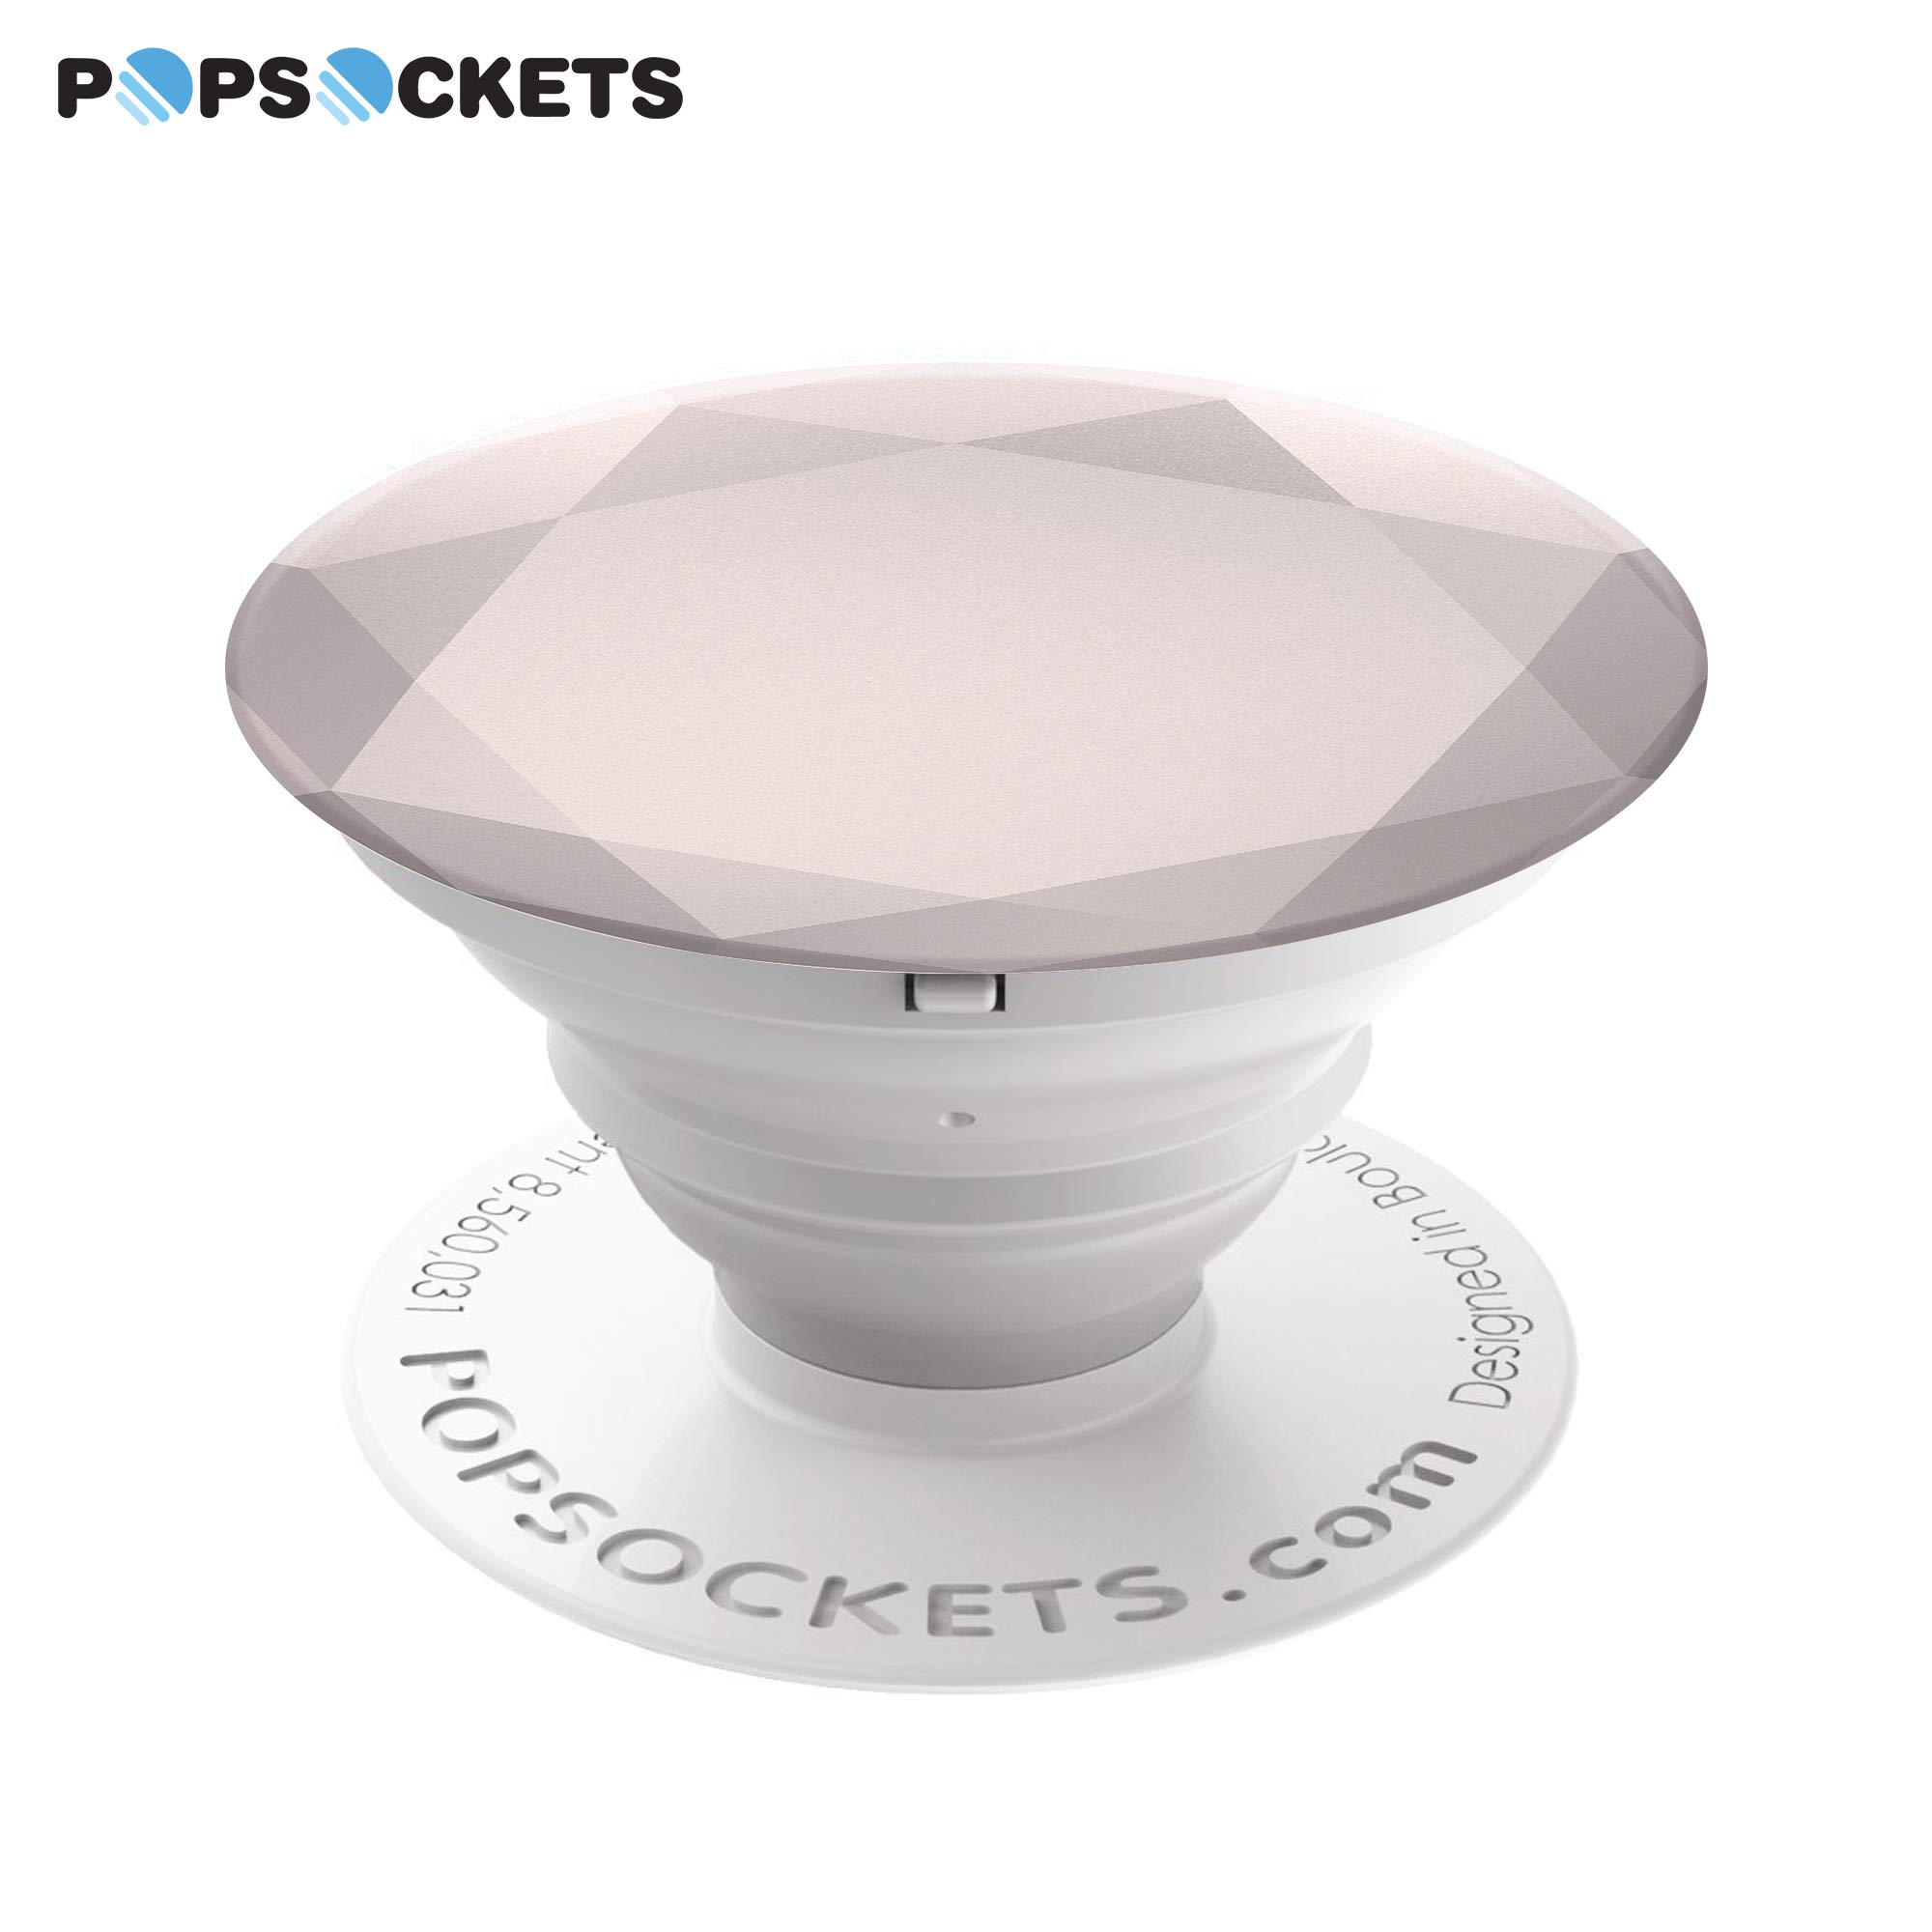 PopSockets: Collapsible Grip & Stand for Phones and Tablets - Rose Gold Metallic Diamond